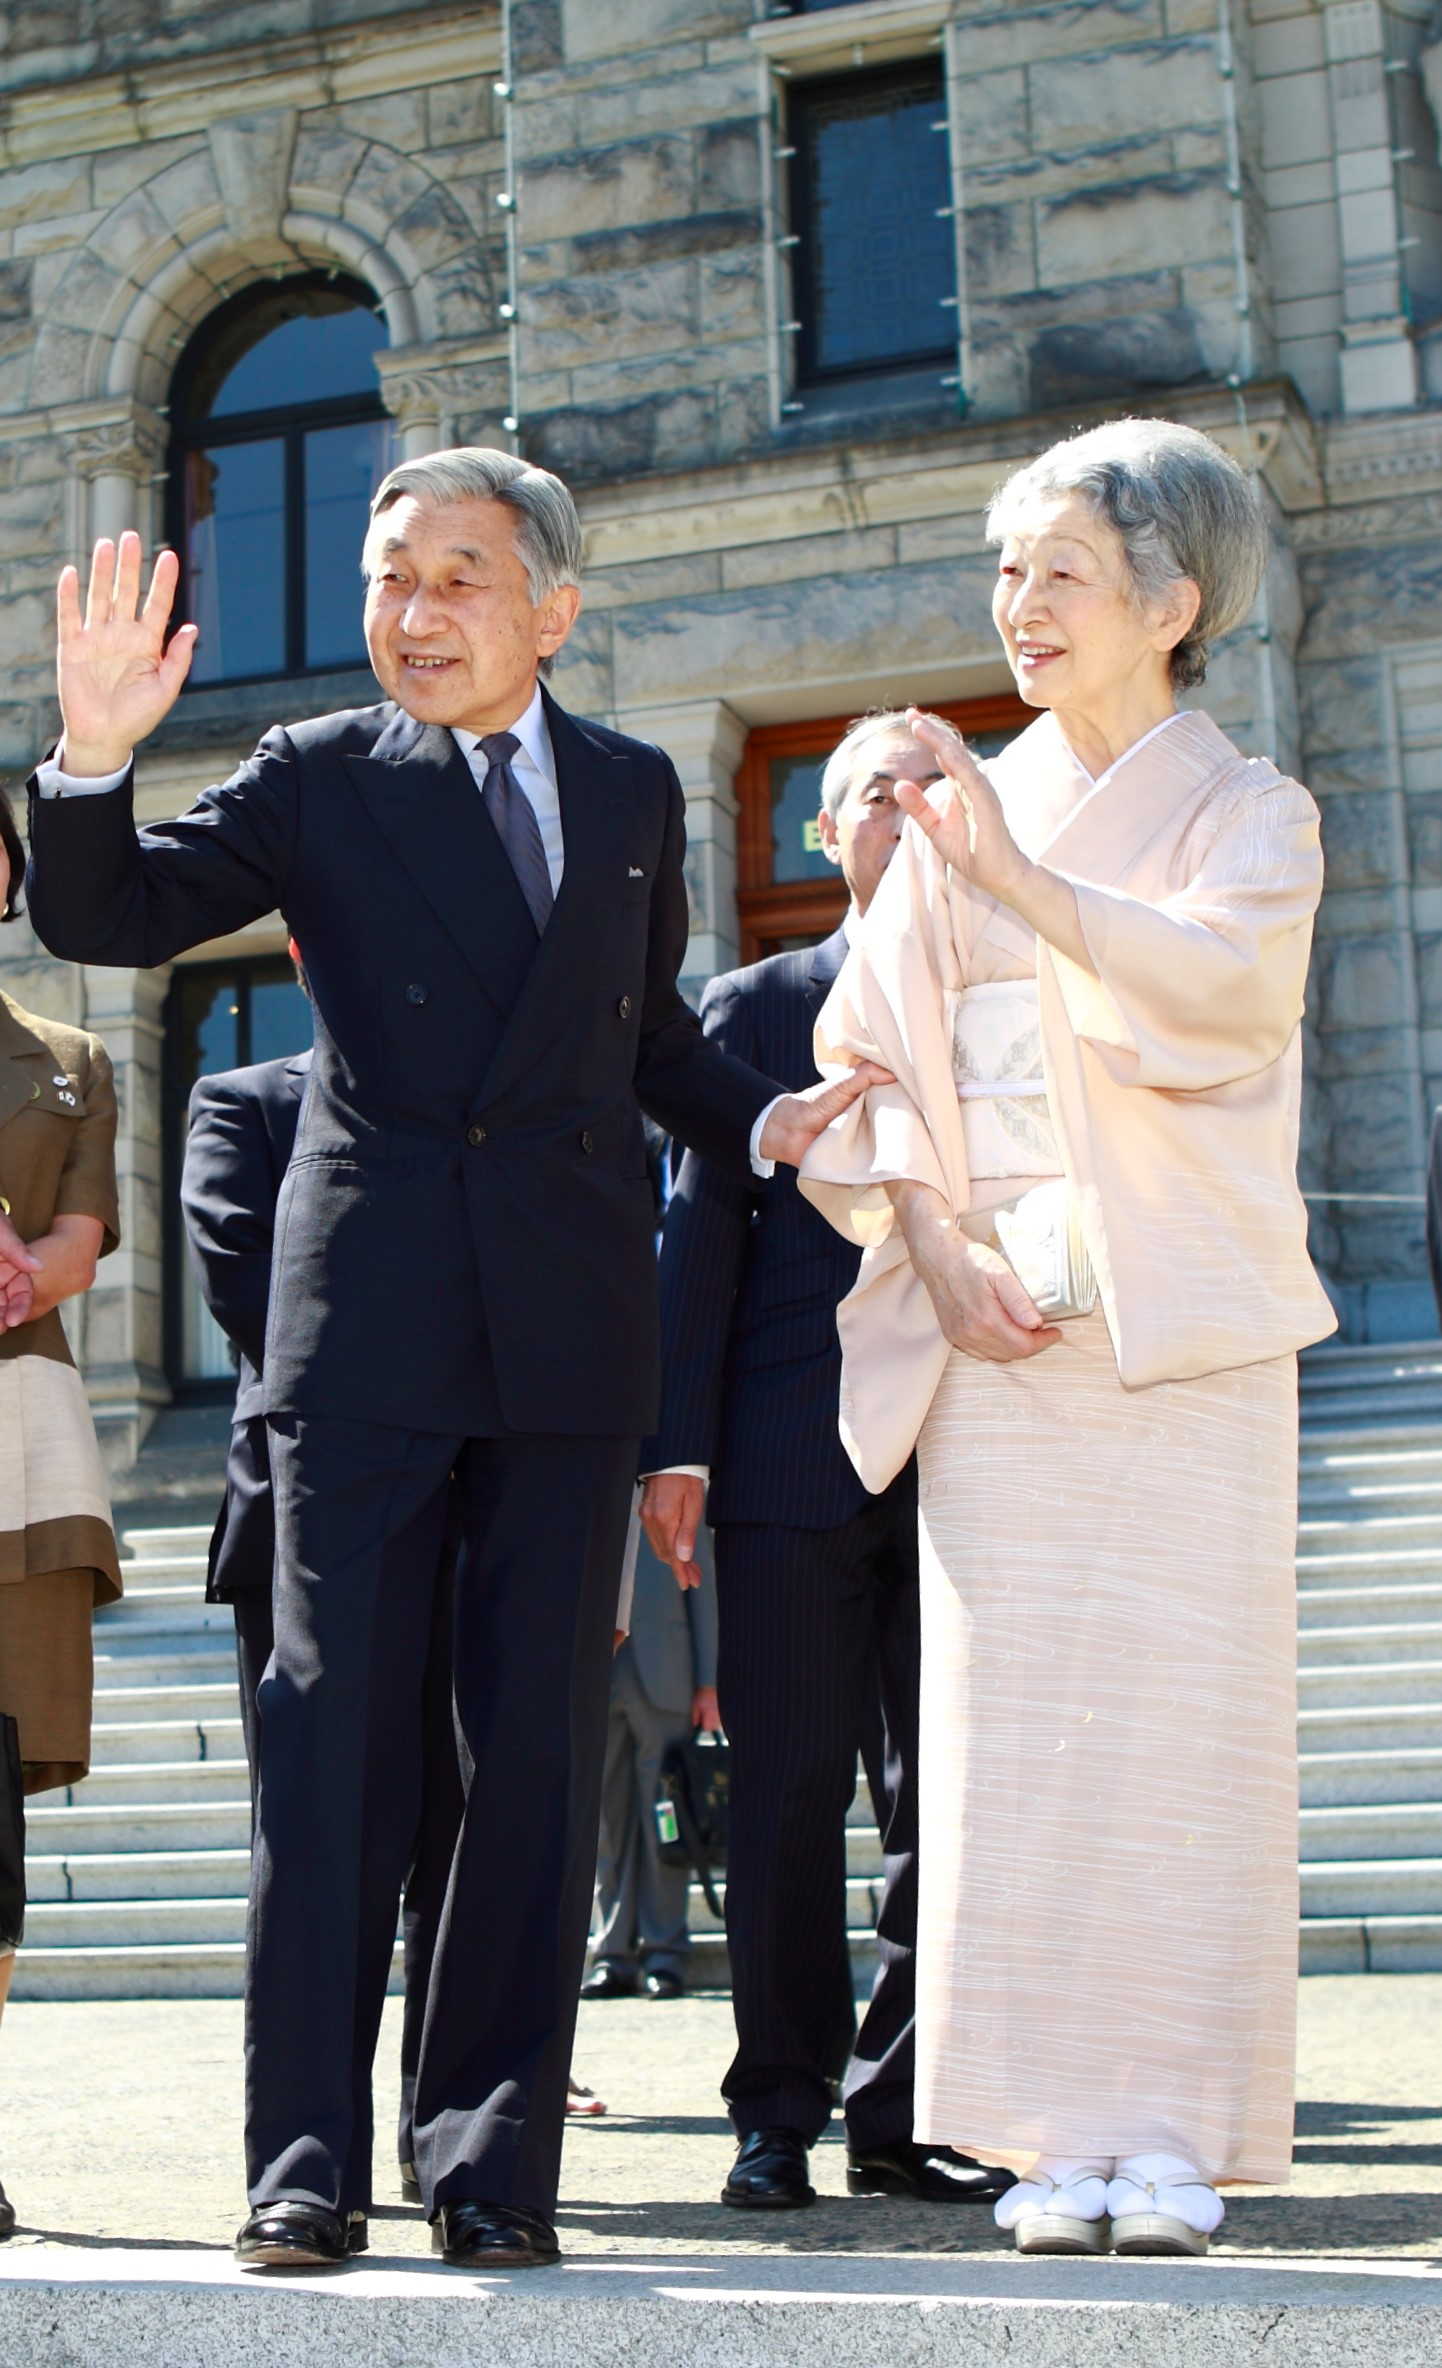 Their Majesties The Emperor and Empress of Japan